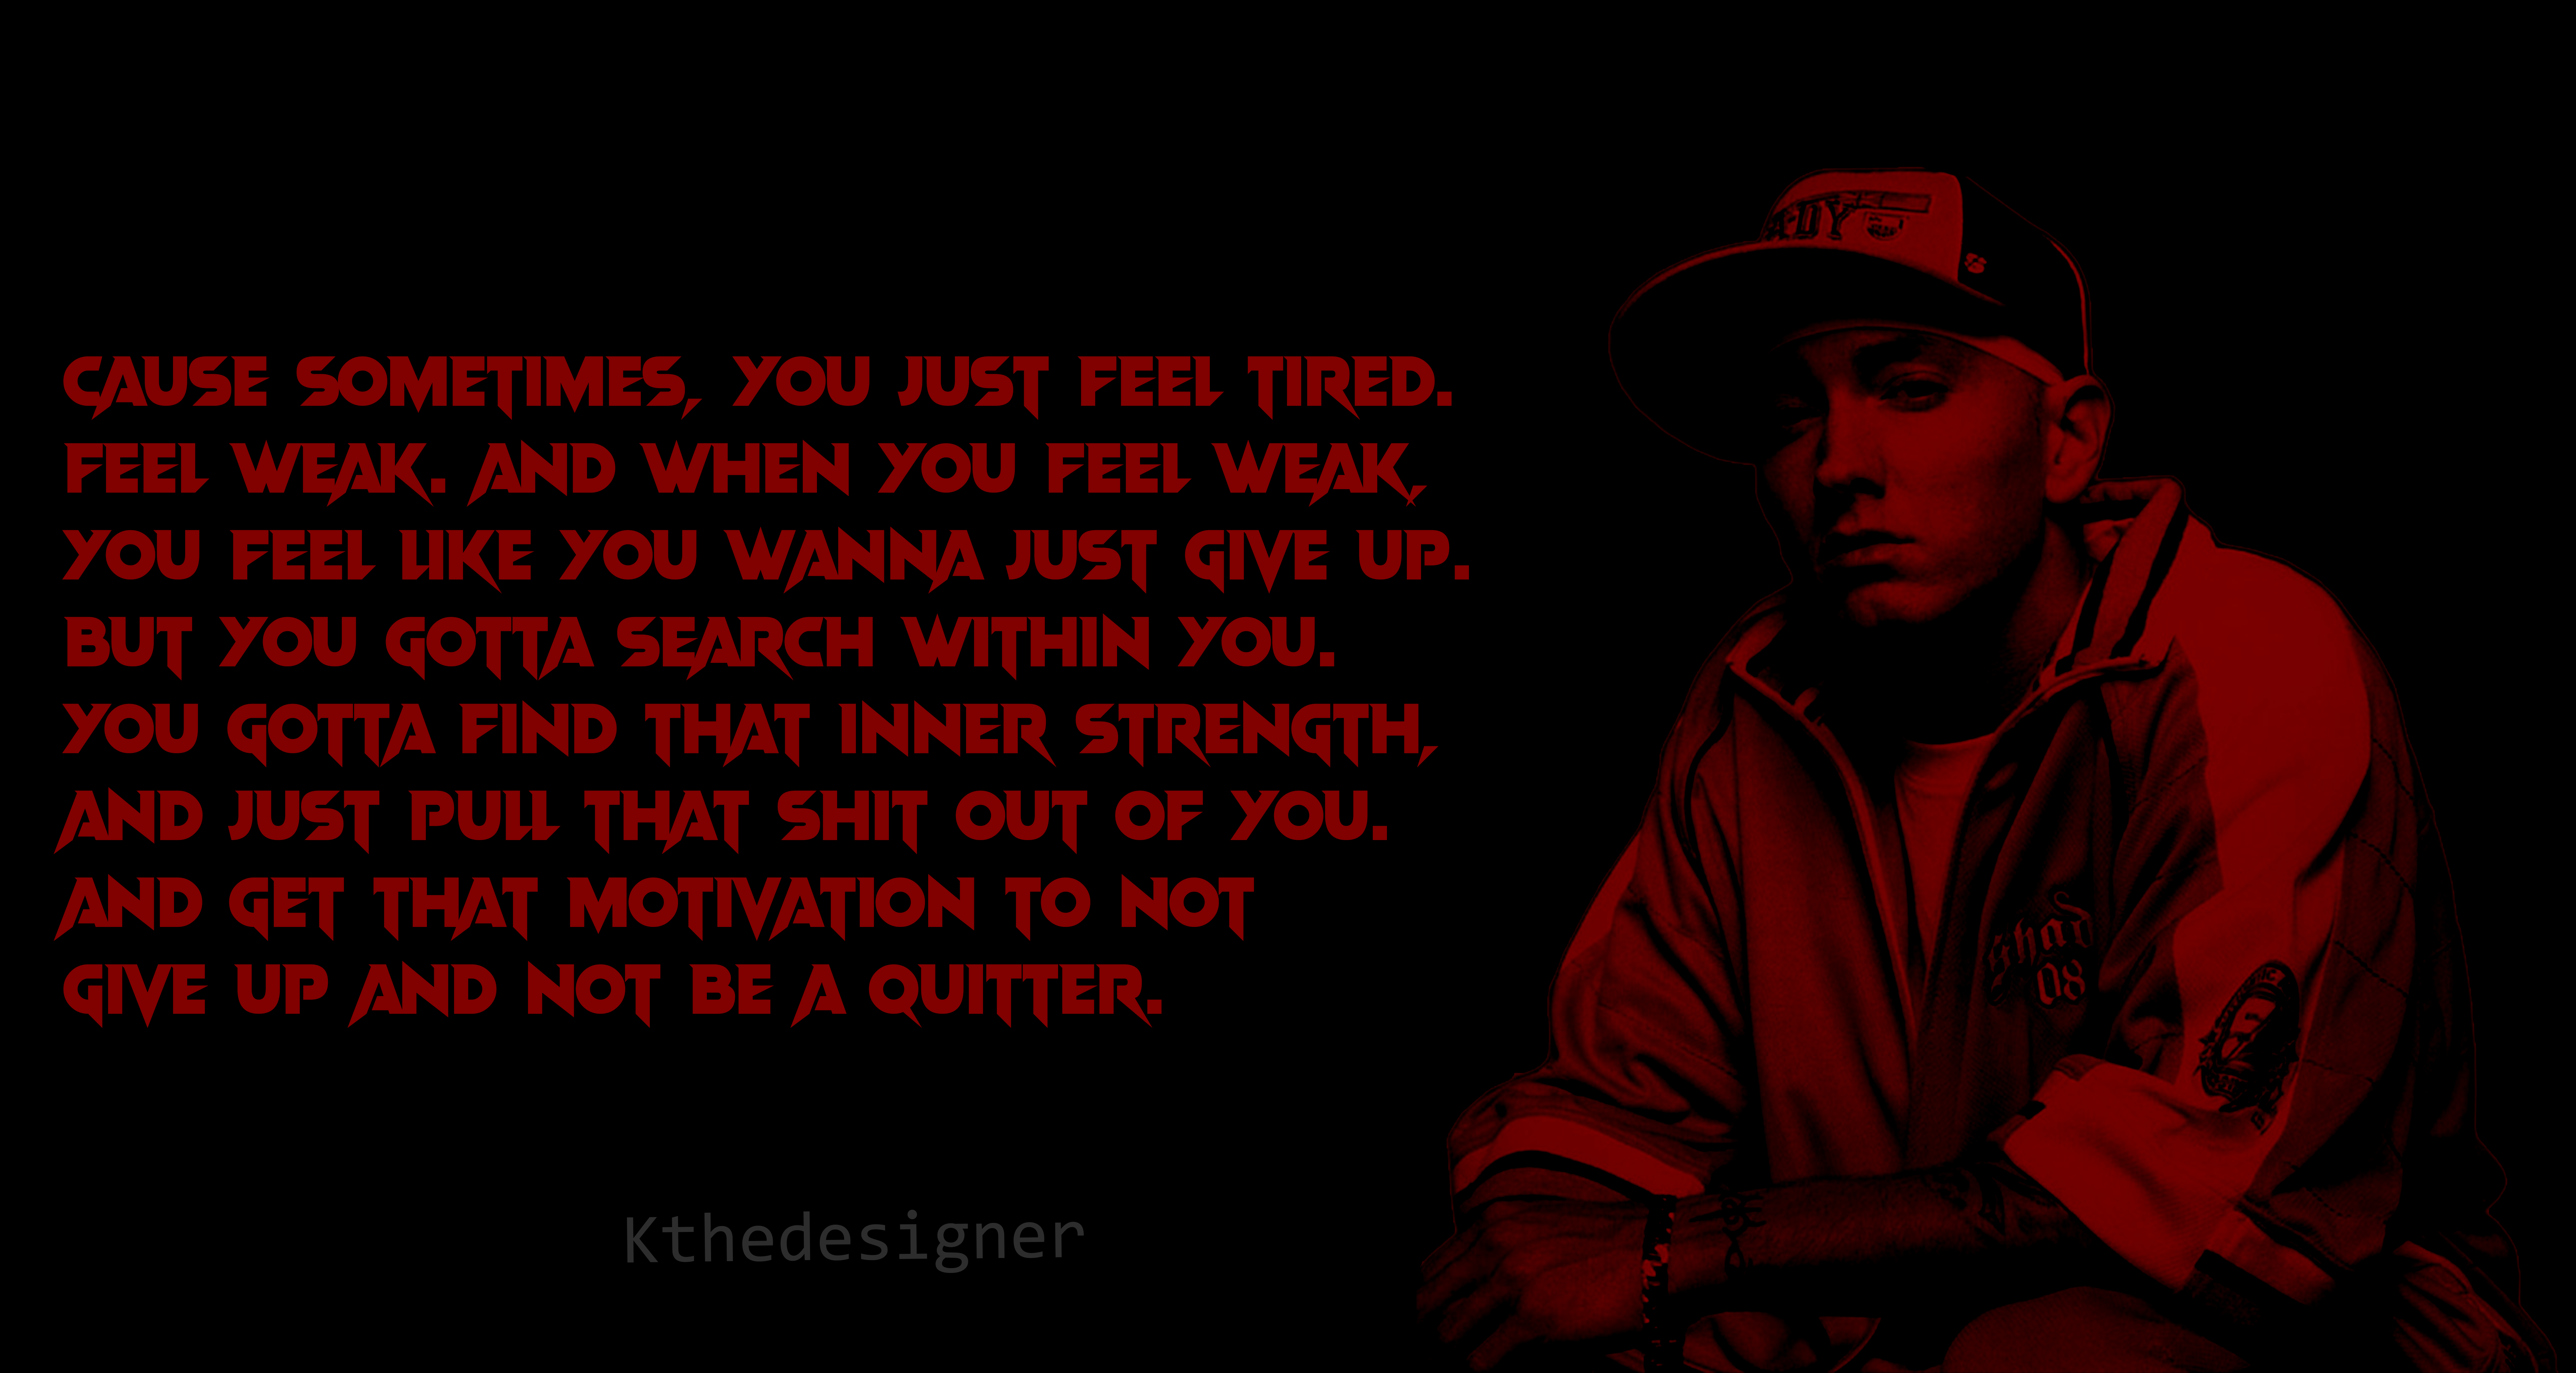 'Cause sometimes, you just feel tired…' – Eminem [7416-3952]